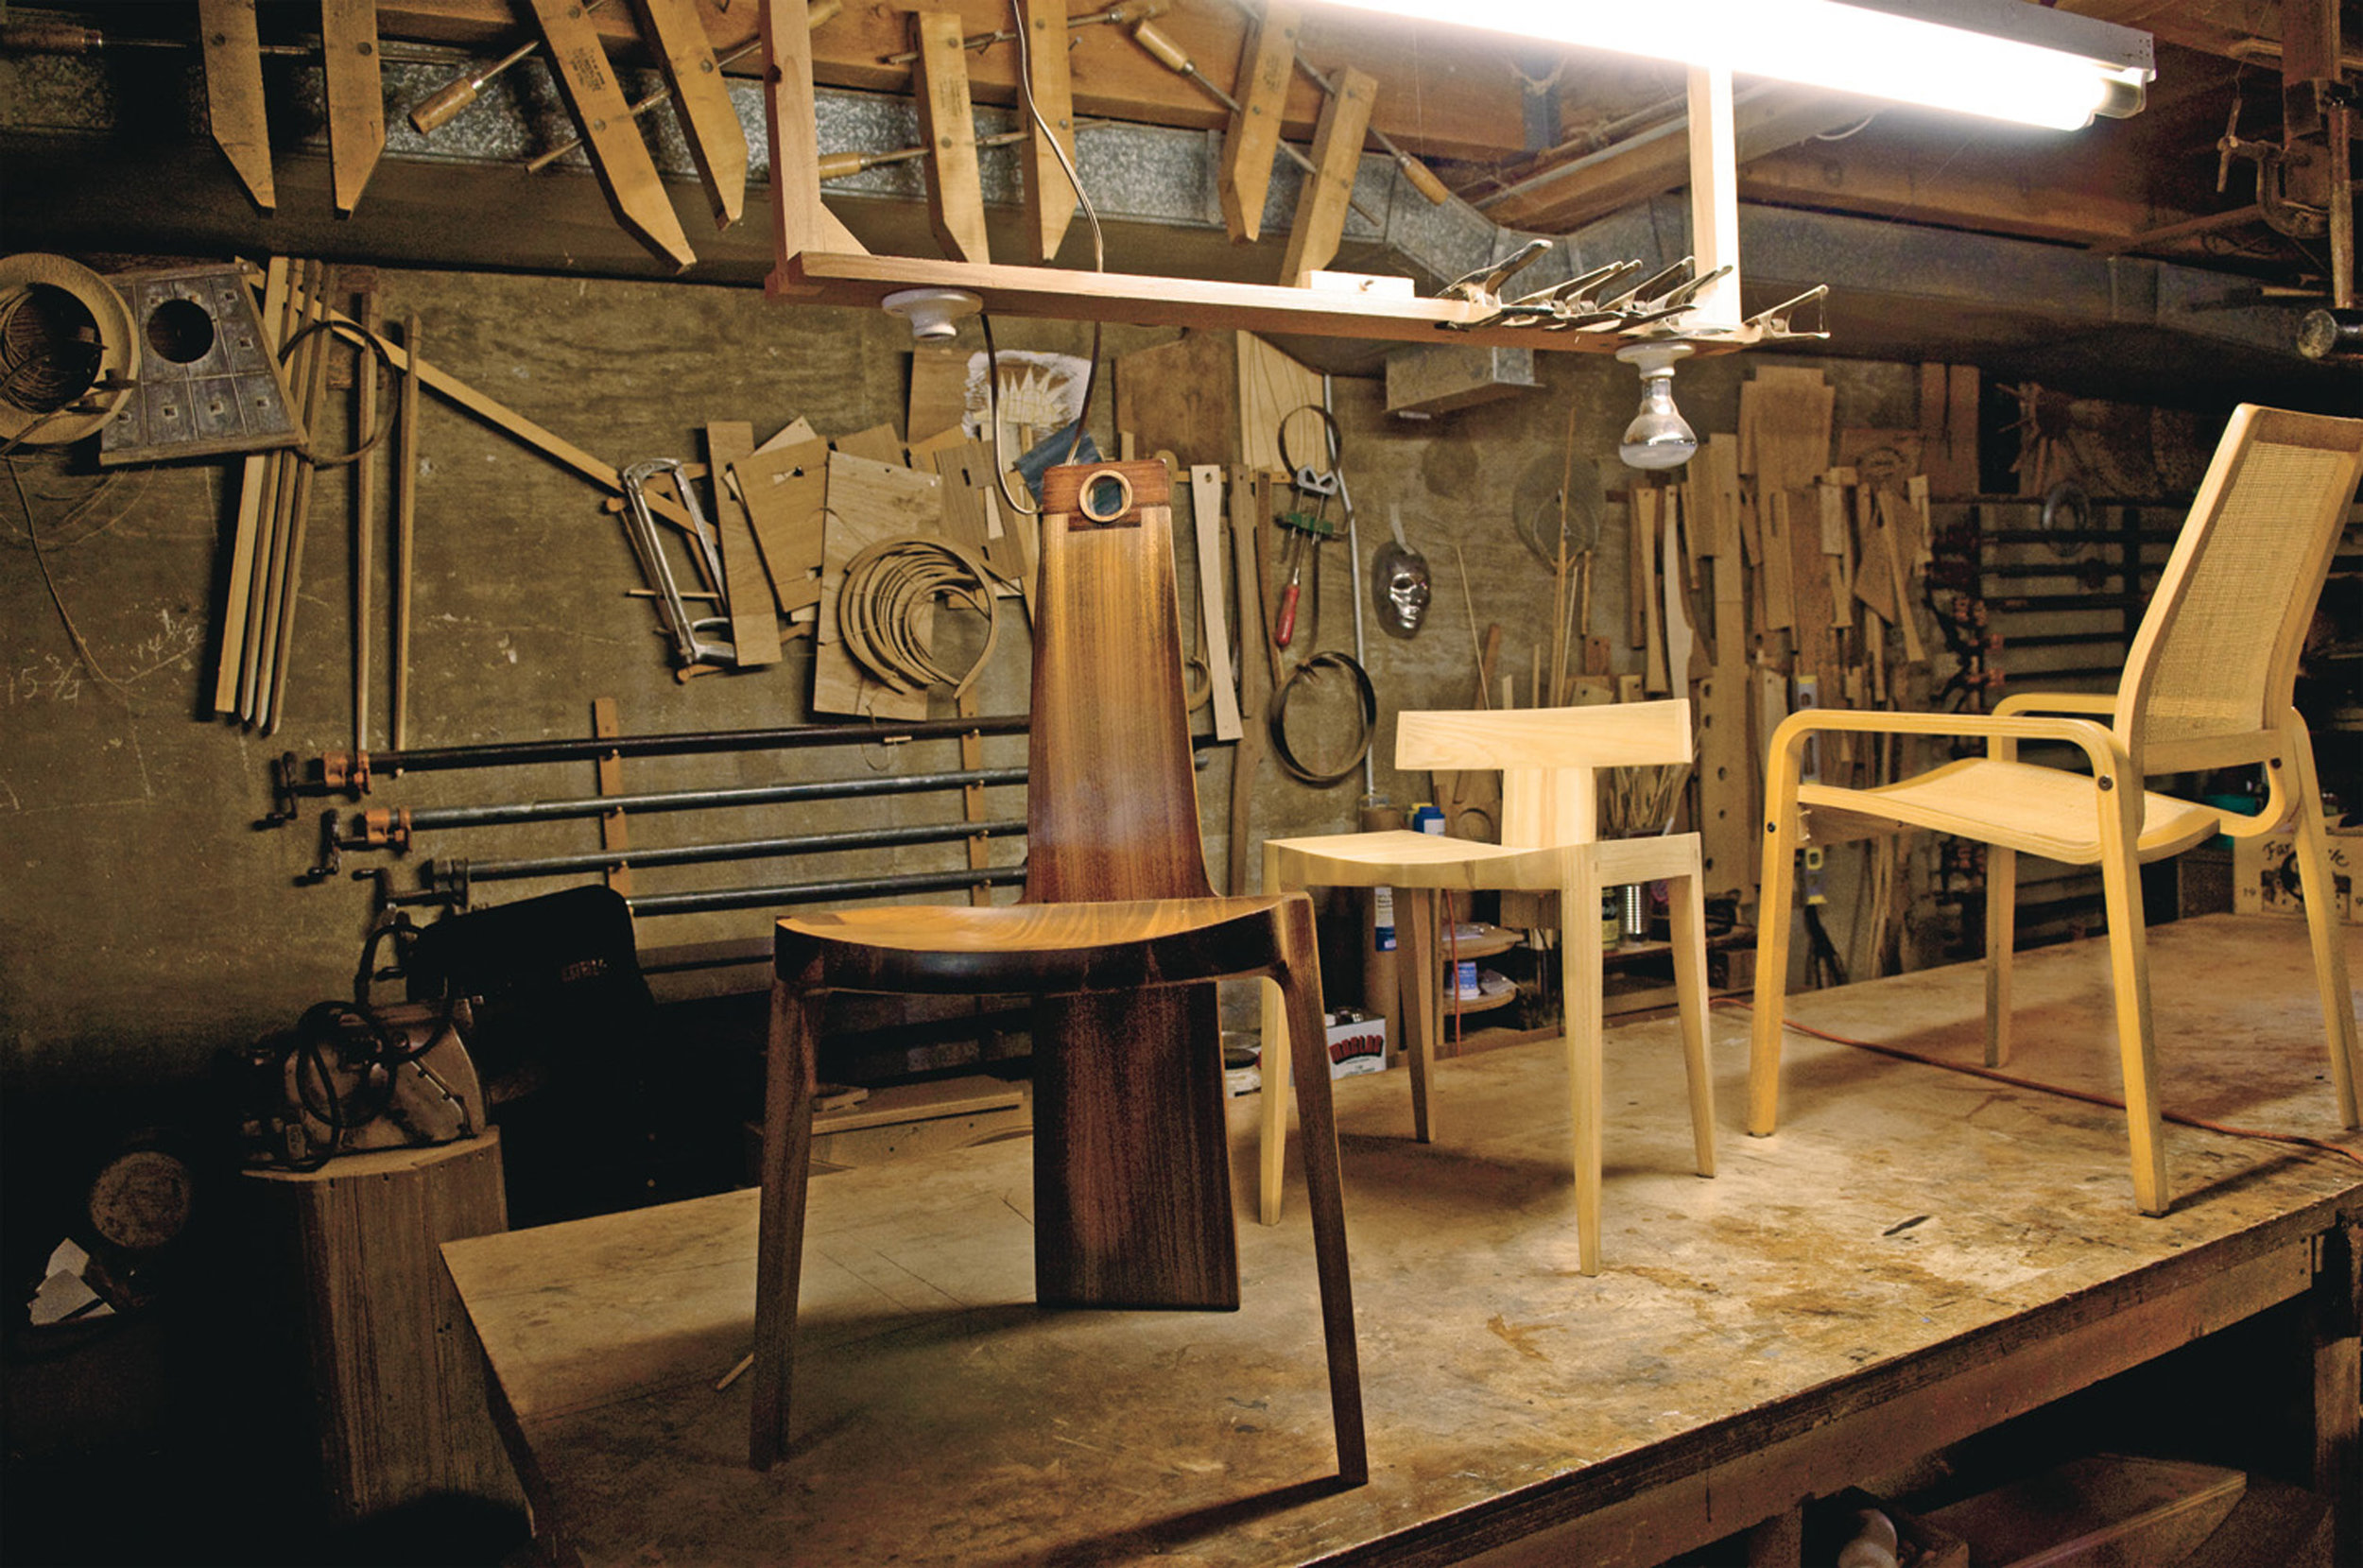 Chair prototypes in John Kapel's workshop. / Photo: C-Home.com